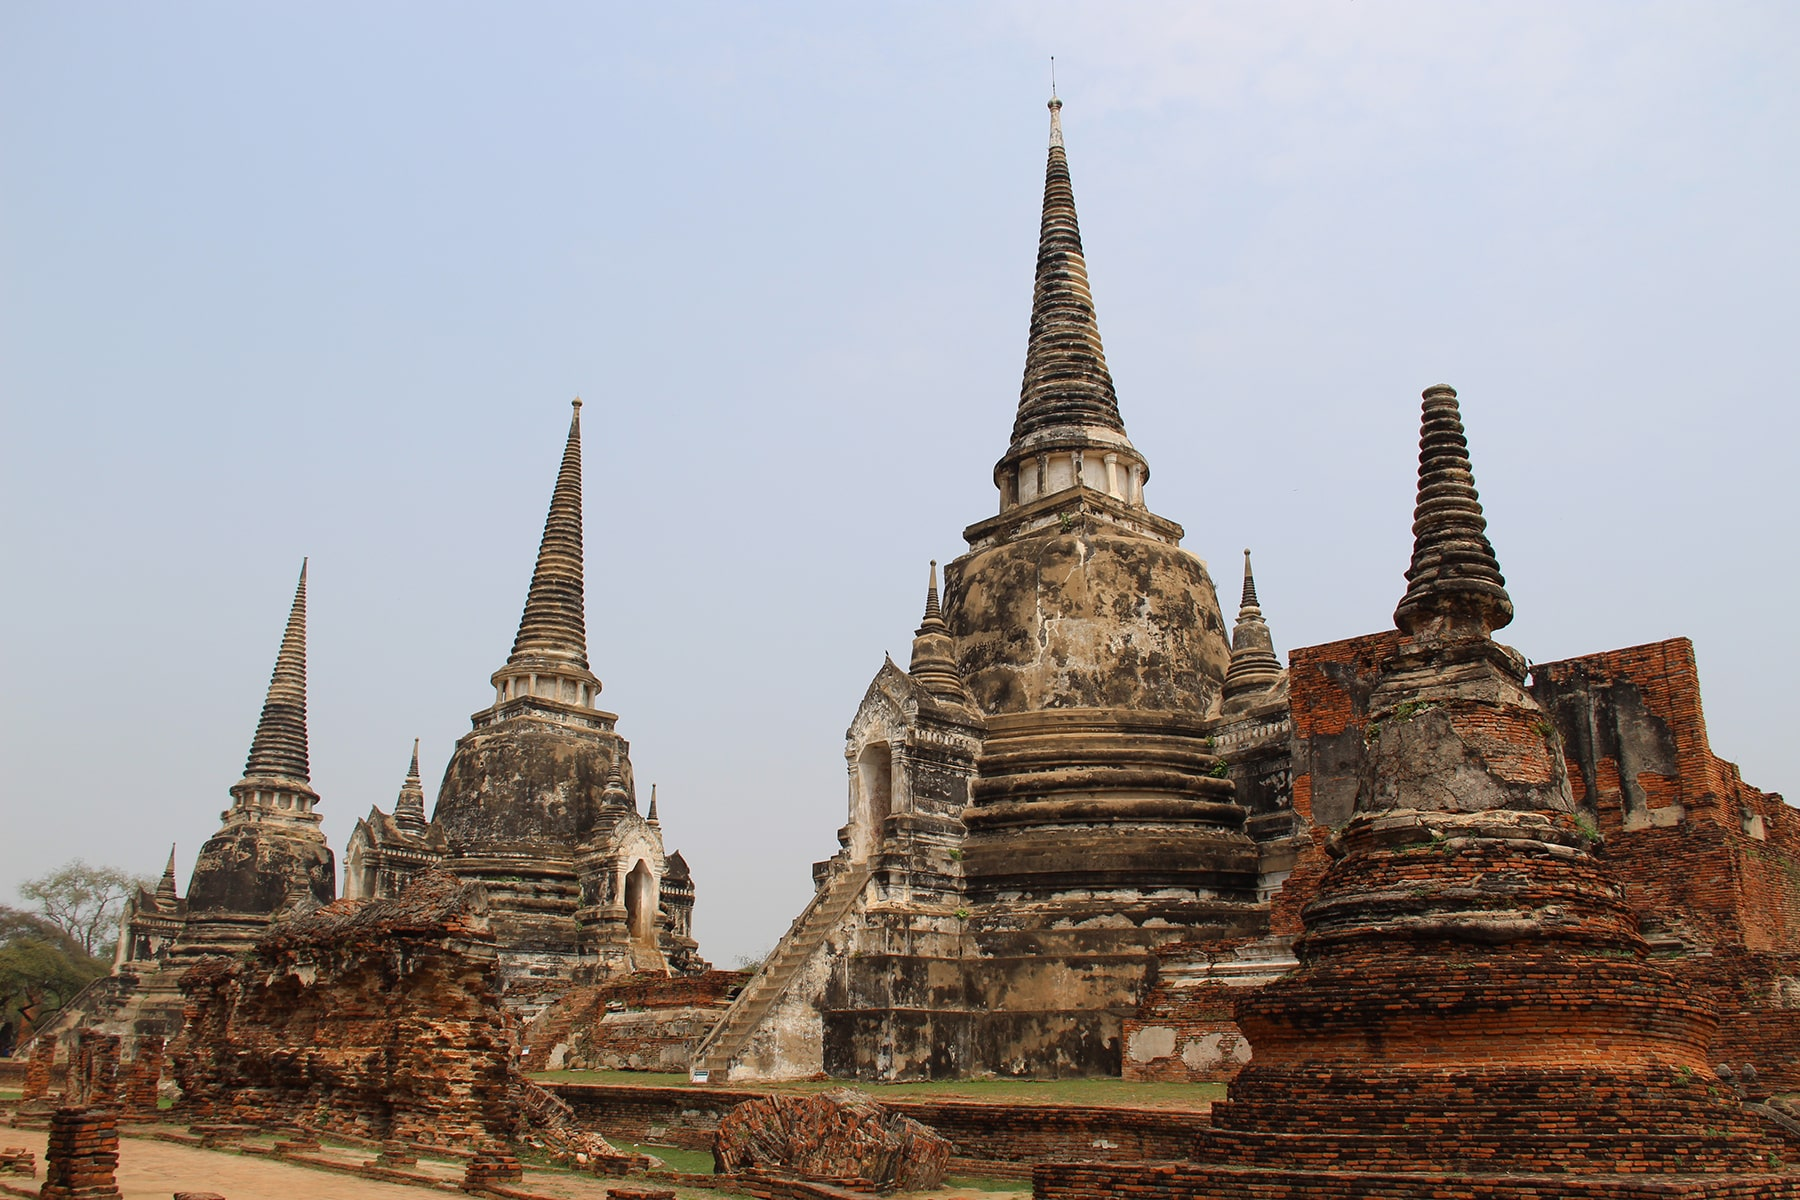 The three stupas of Wat Phra Si Sanphet in Ayutthaya